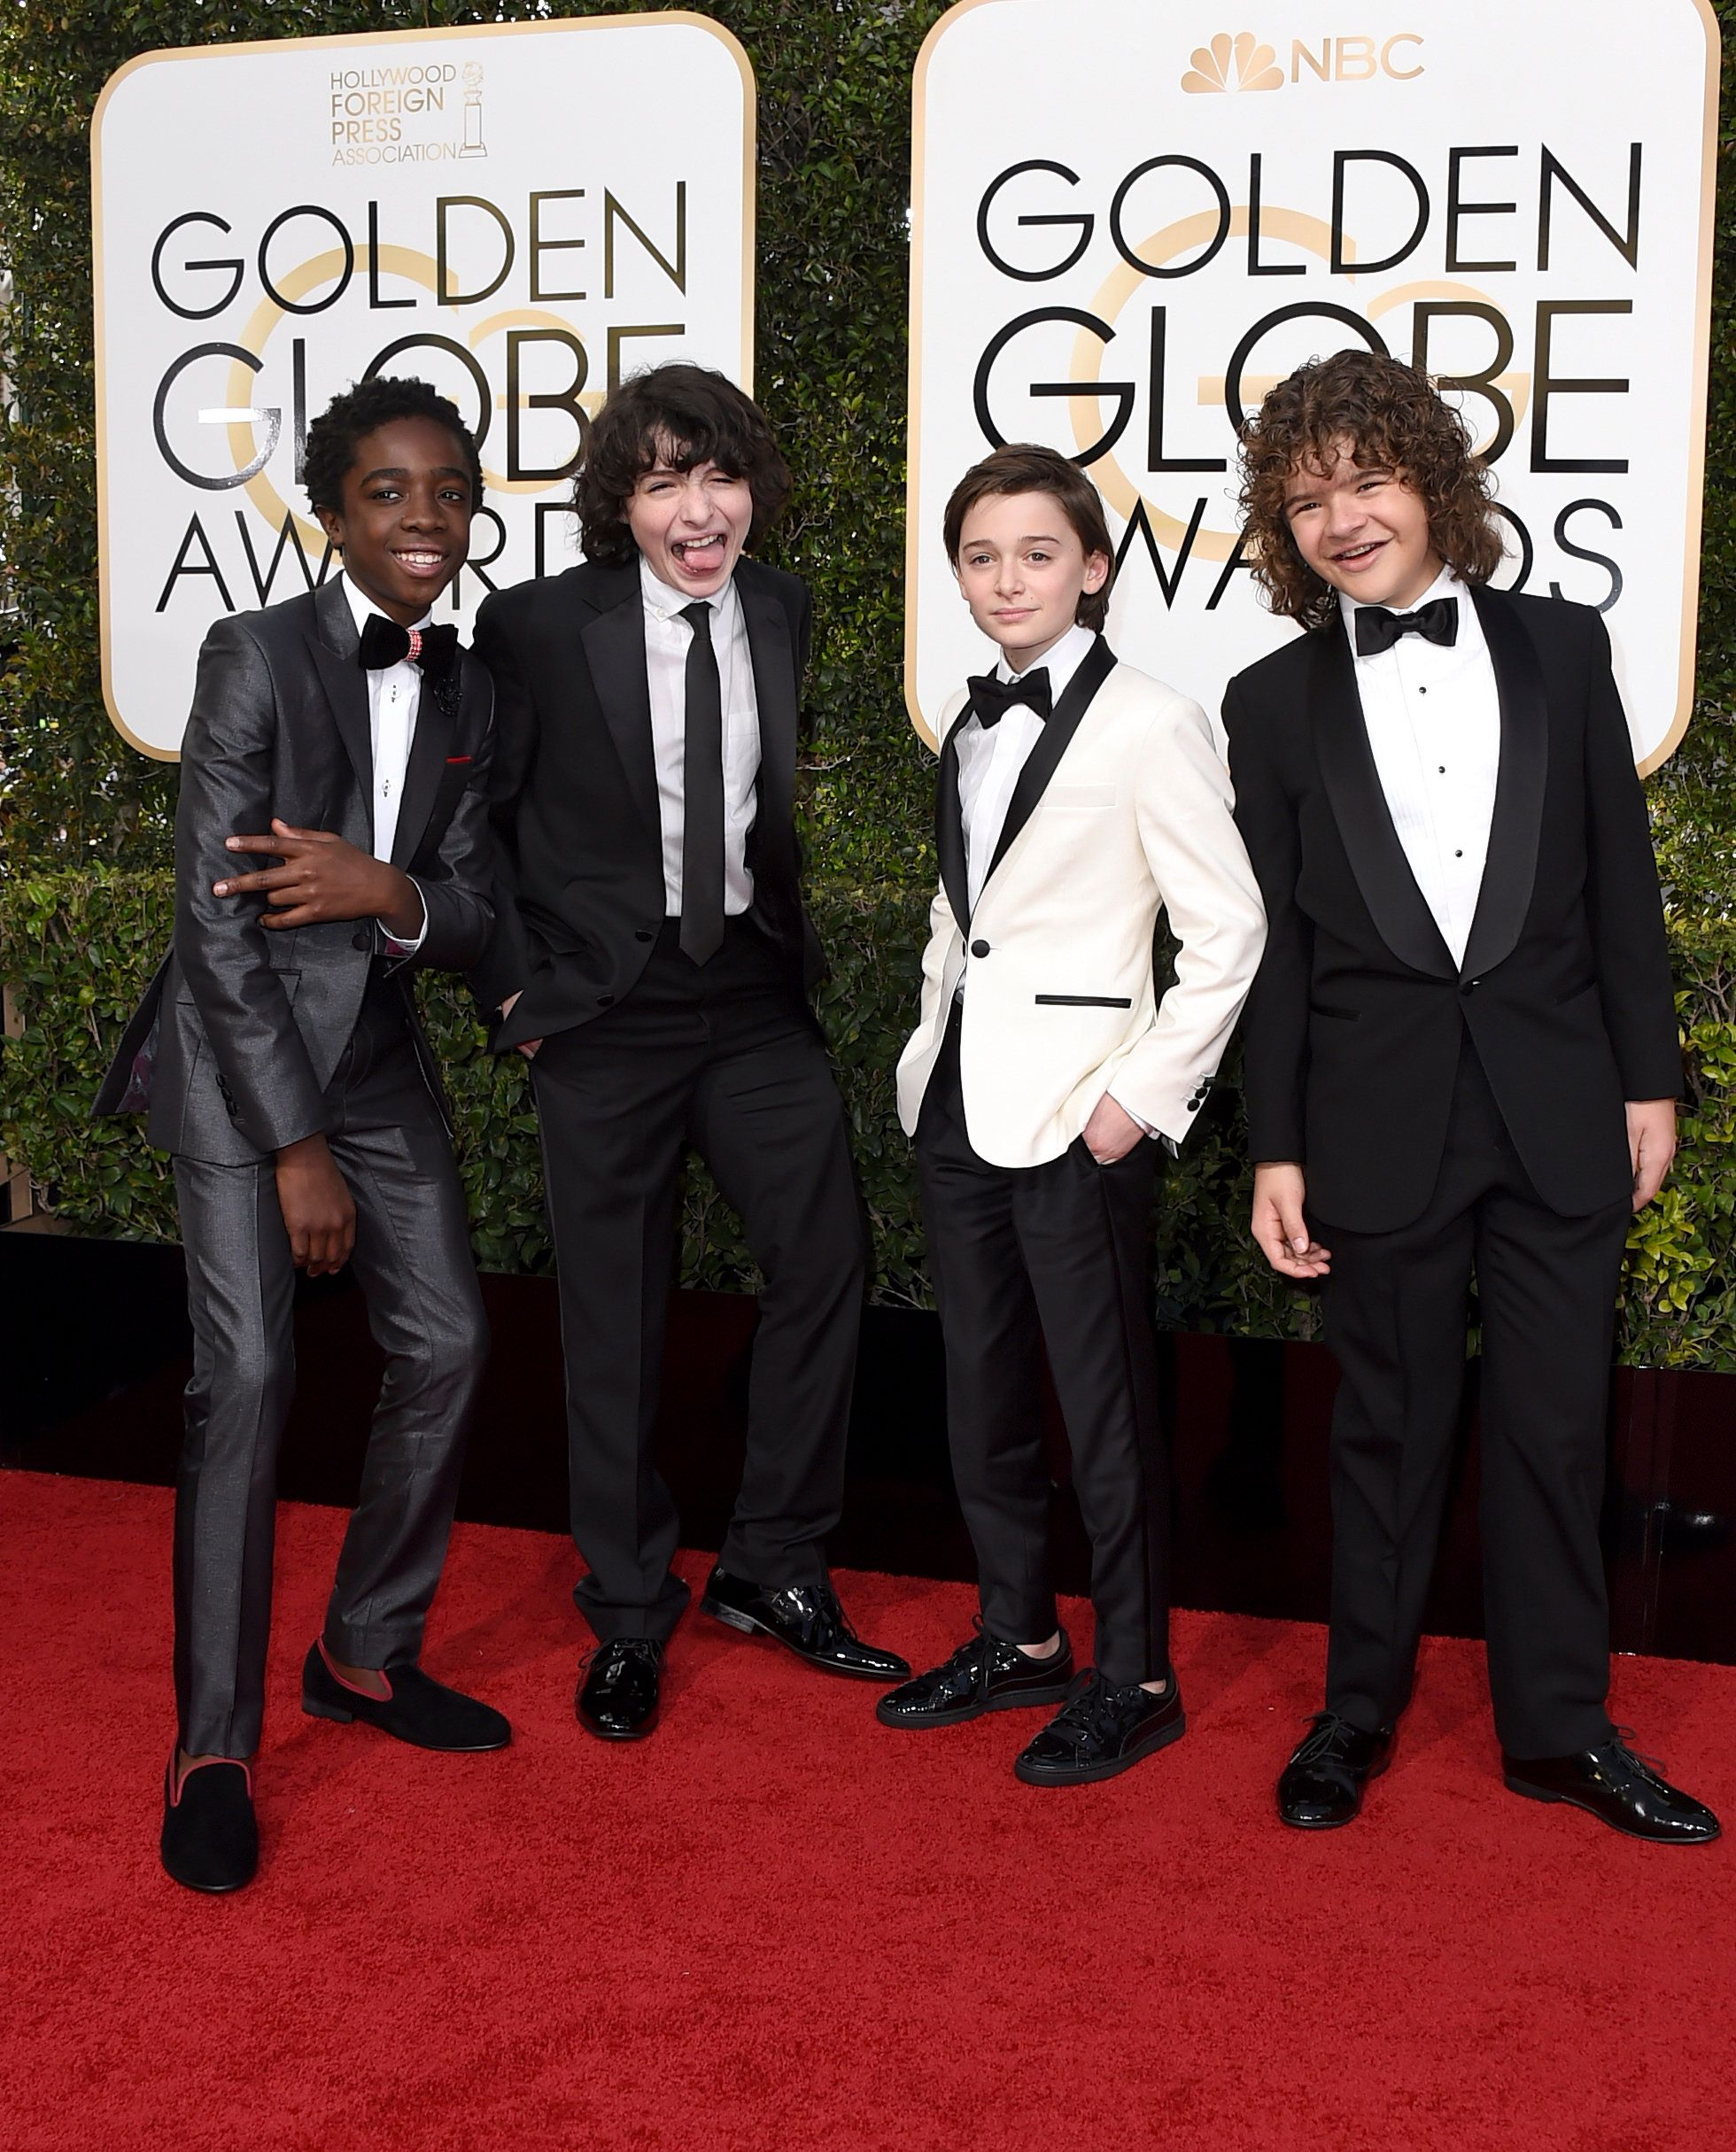 The 'Stranger Things' Gang Hit The Red Carpet At The Golden